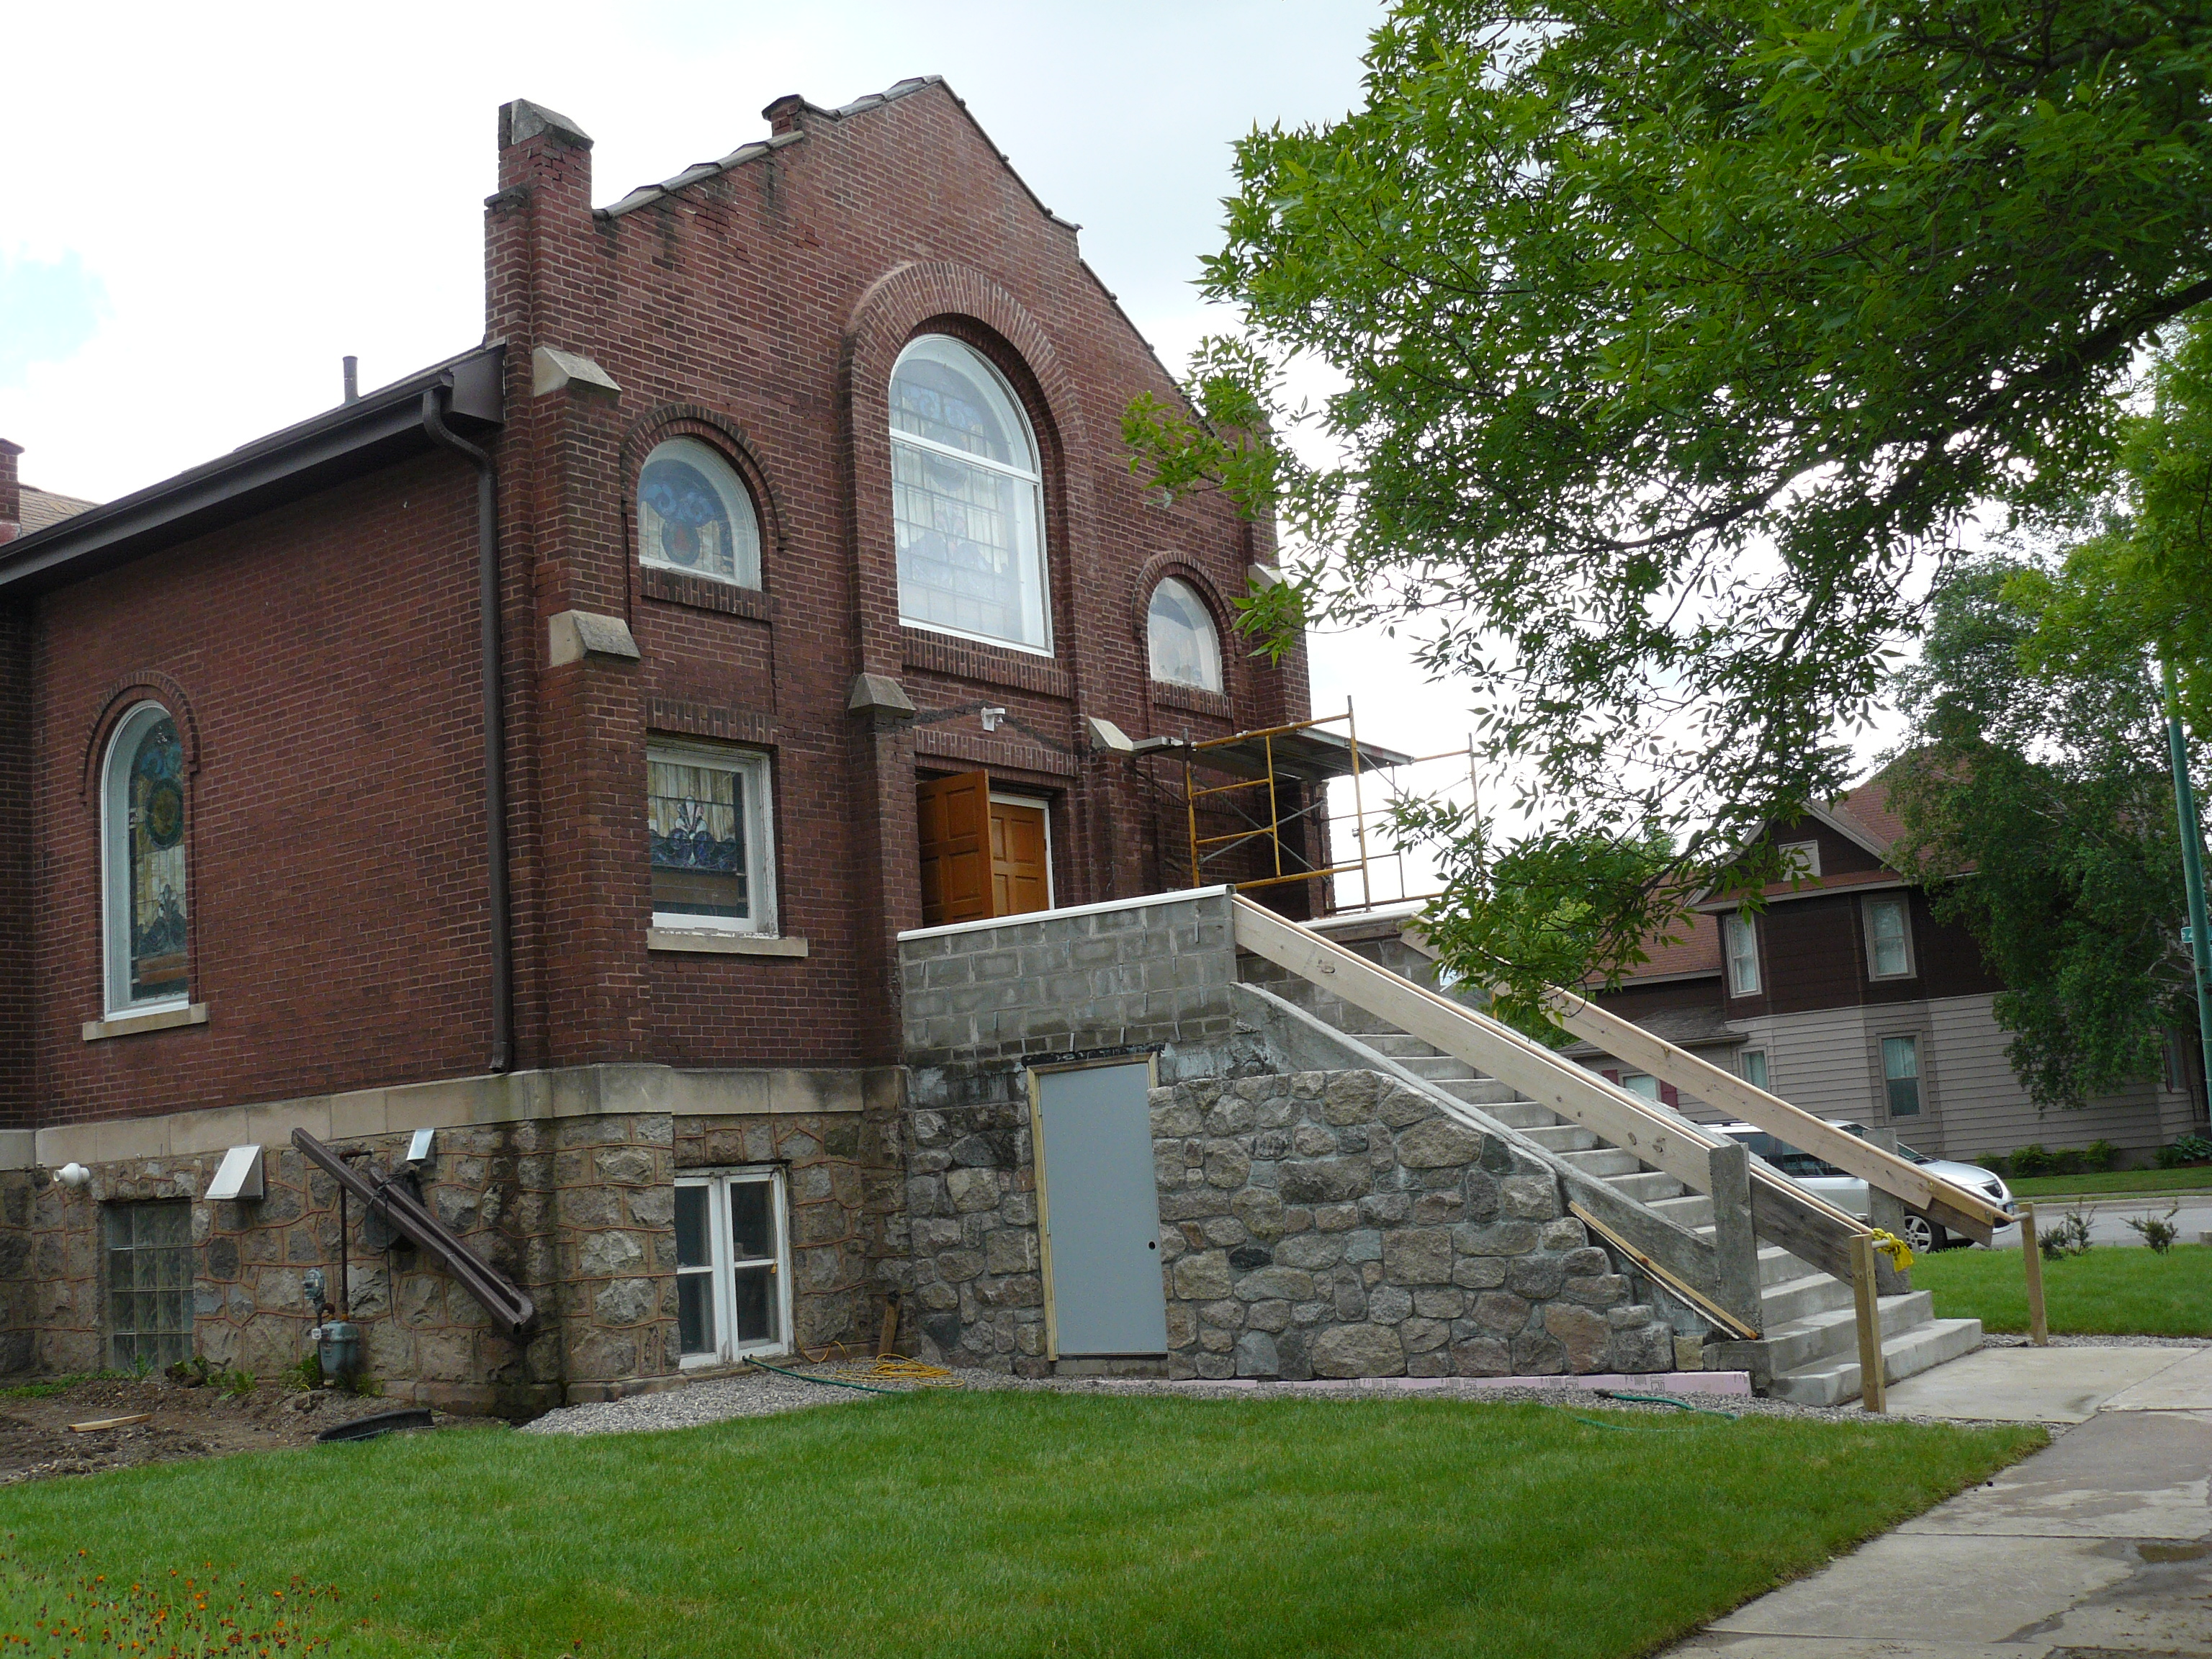 MN90: At home on the Iron Range – Restoring a Jewish legacy in Virginia, MN